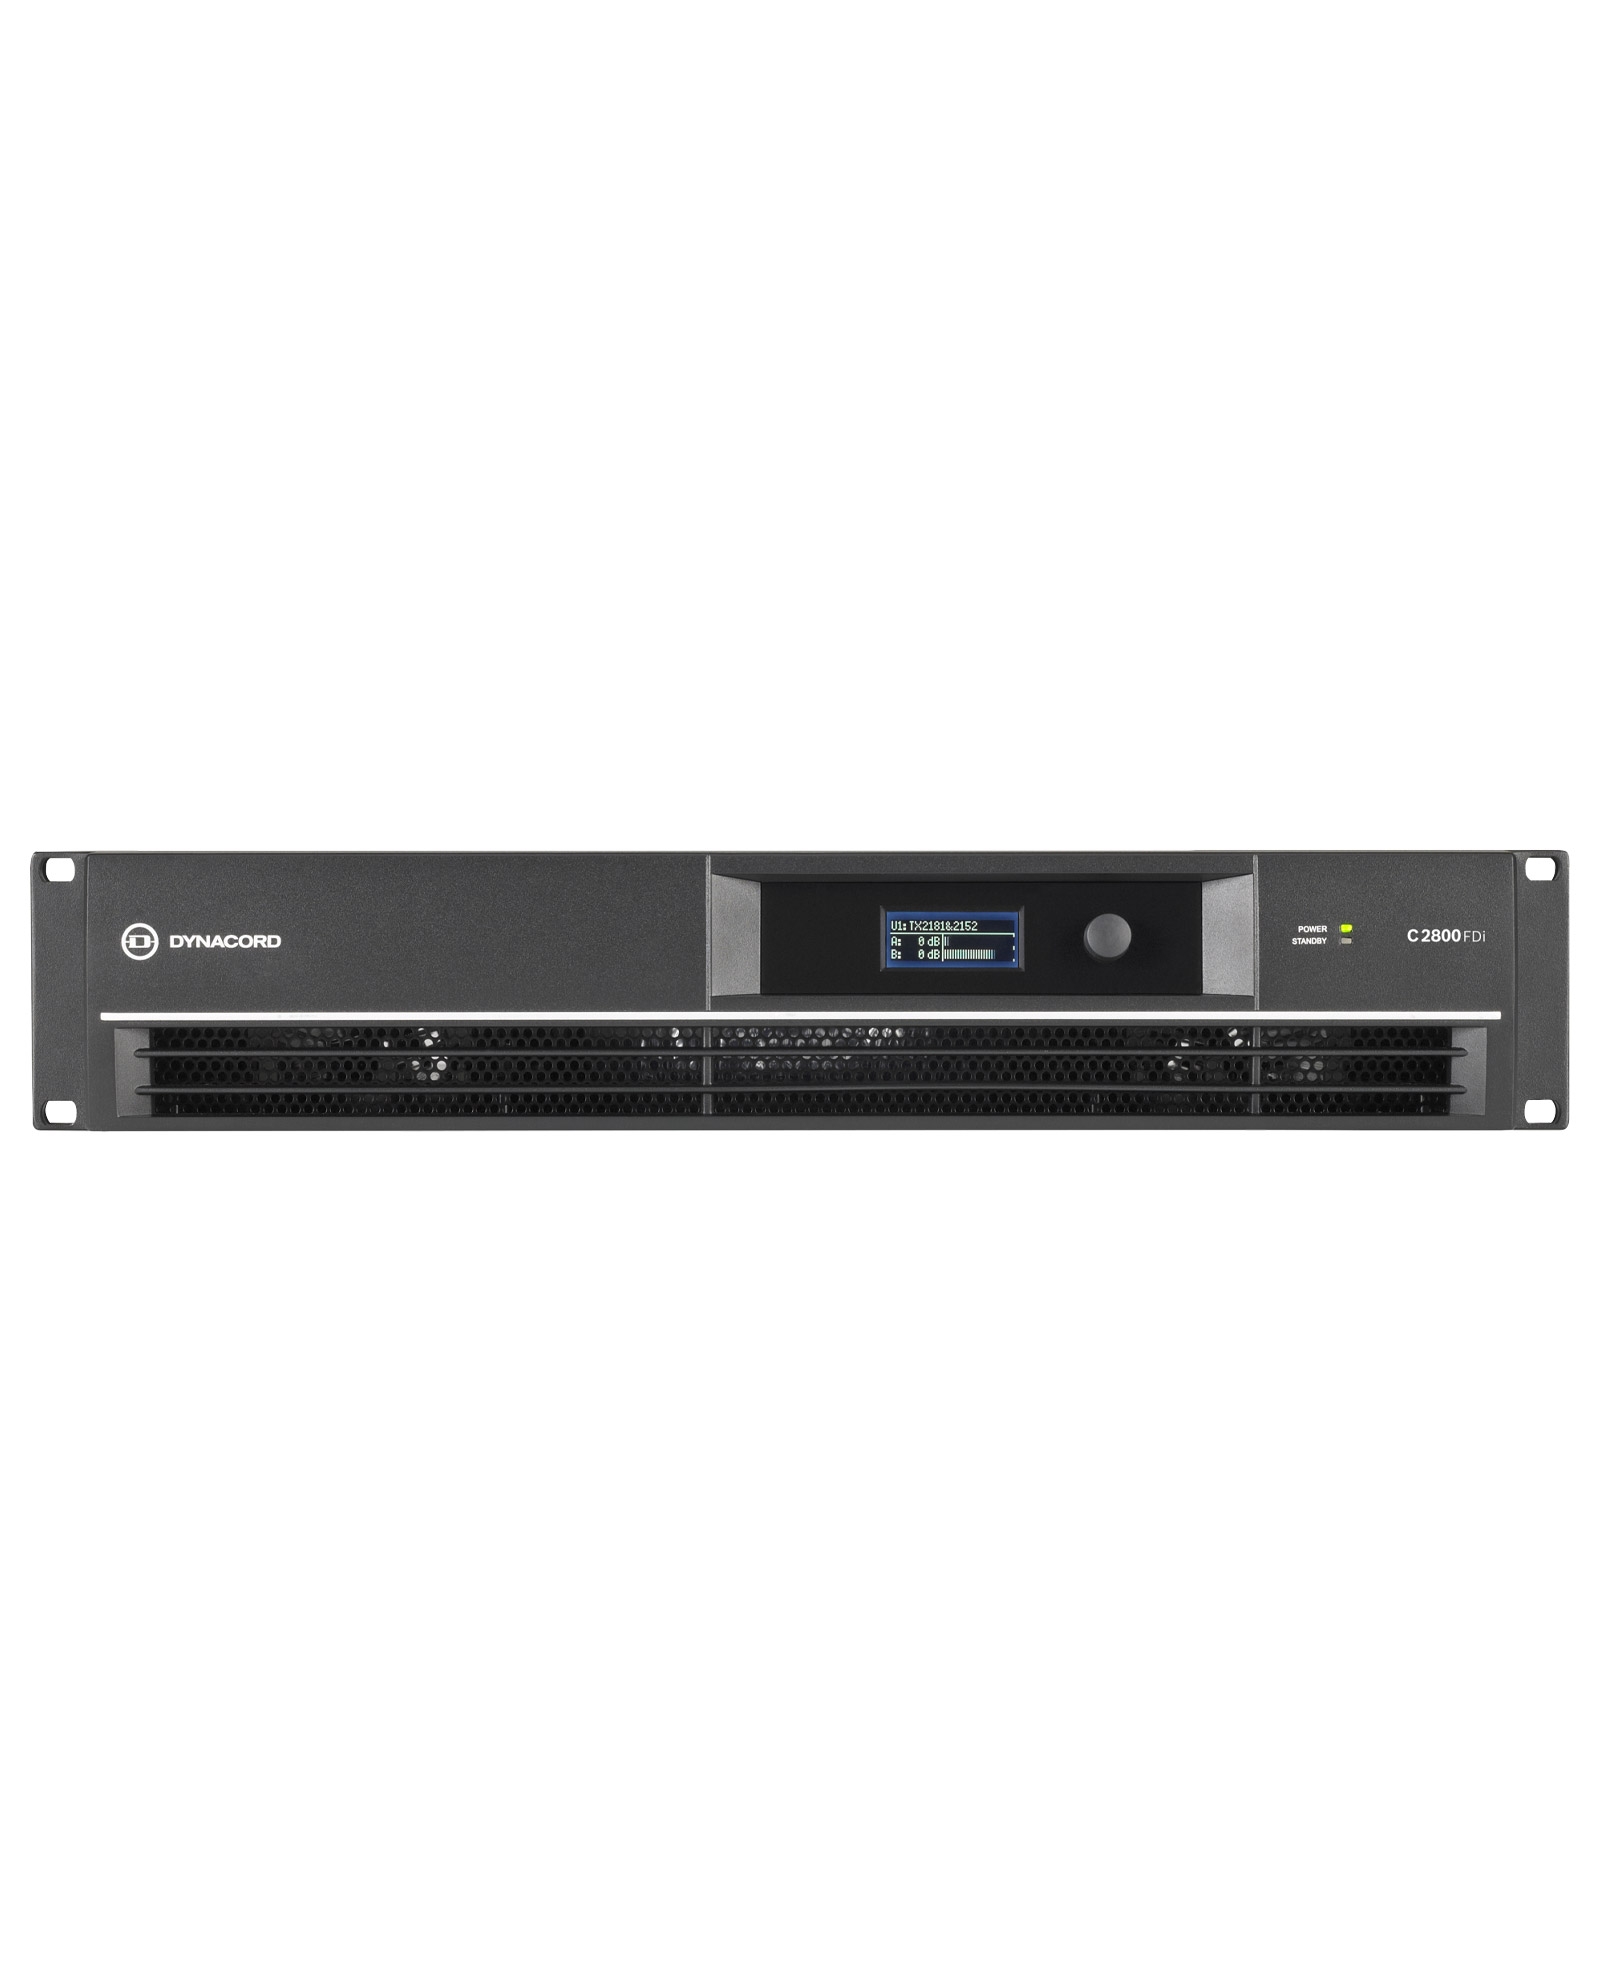 Dynacord C2800fdi Dsp 2x1400w Power Amplifier